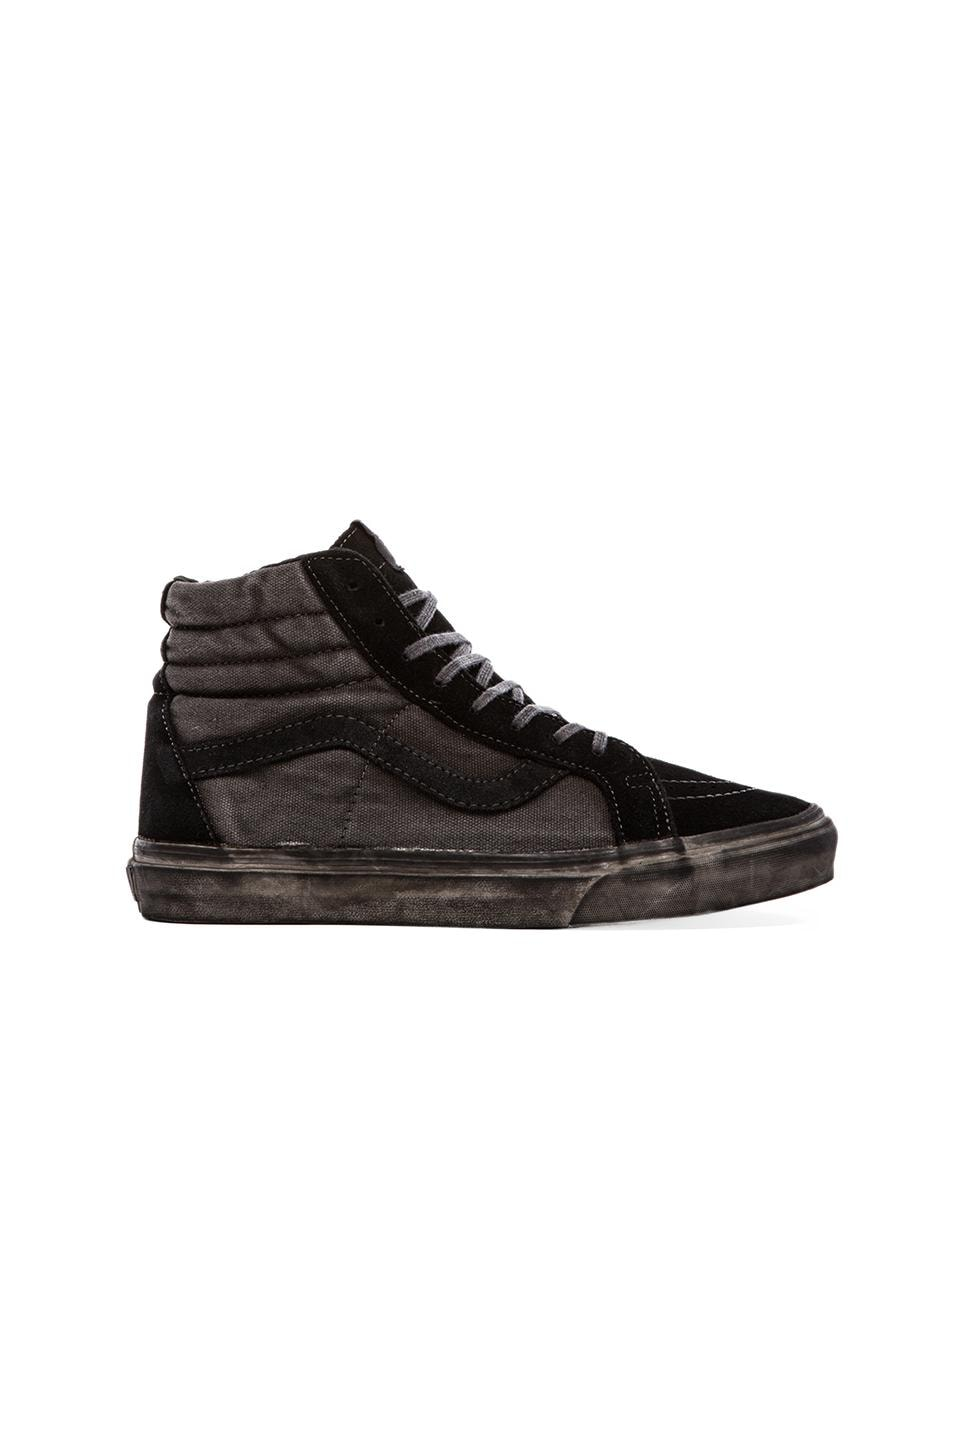 Vans California Sk8-Hi Reissue Over Washed in Black